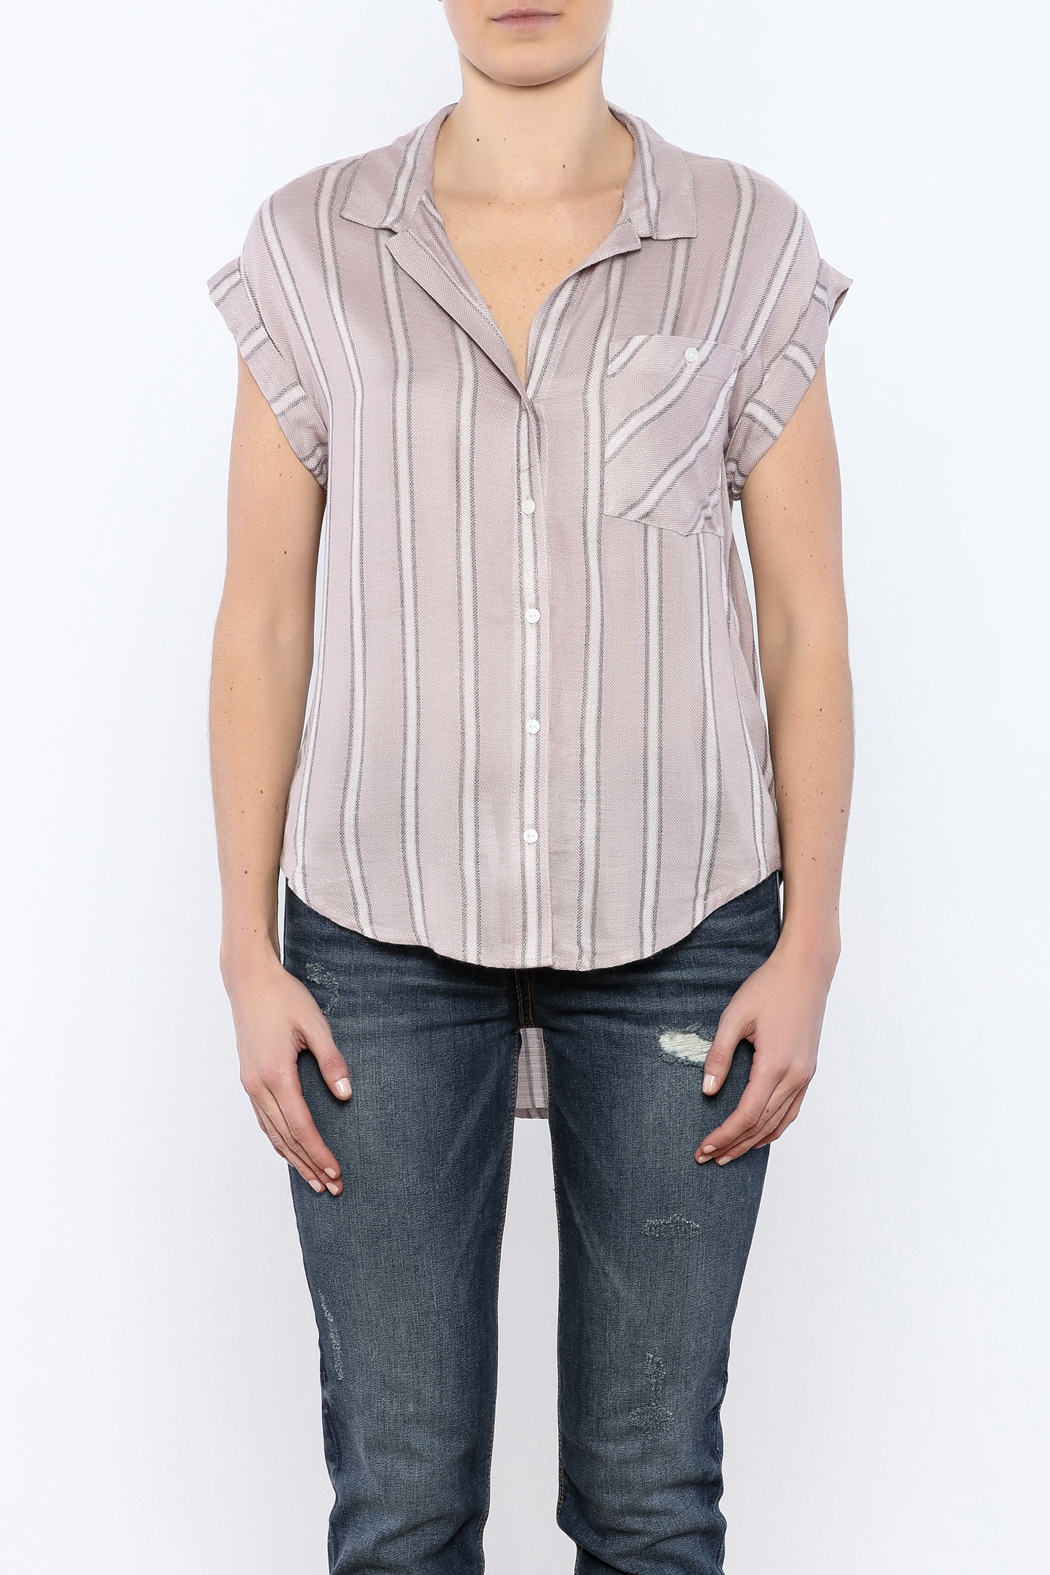 Sneak Peek Striped Button Down Hi-Lo Top - Side Cropped Image